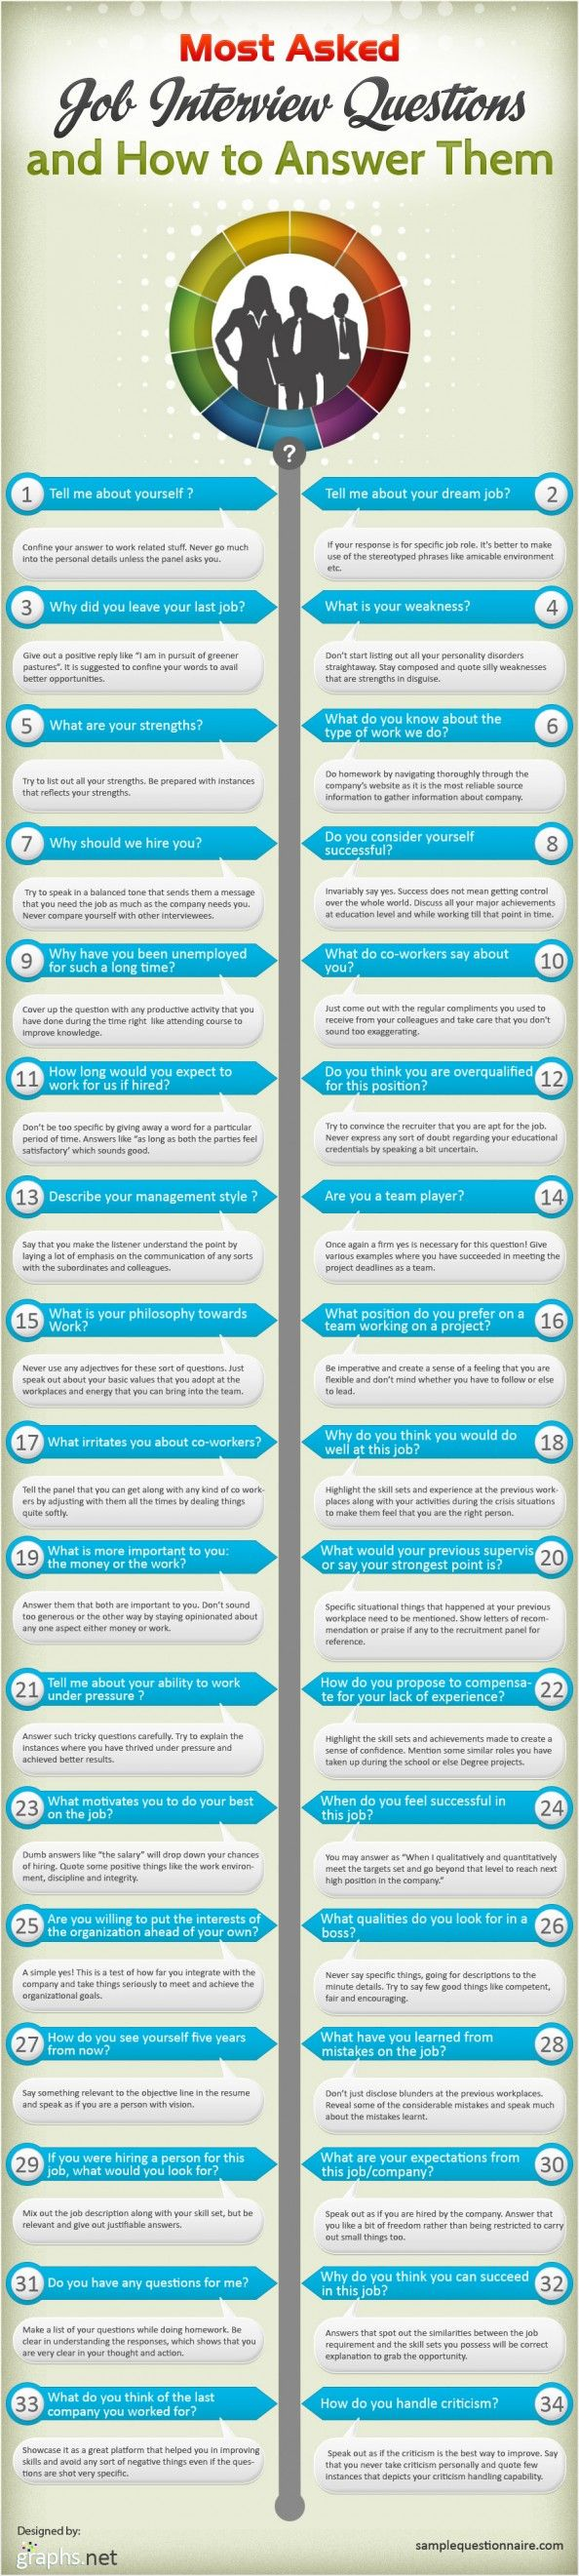 ideas about management interview questions most asked job interview questions and how to answer them infographic